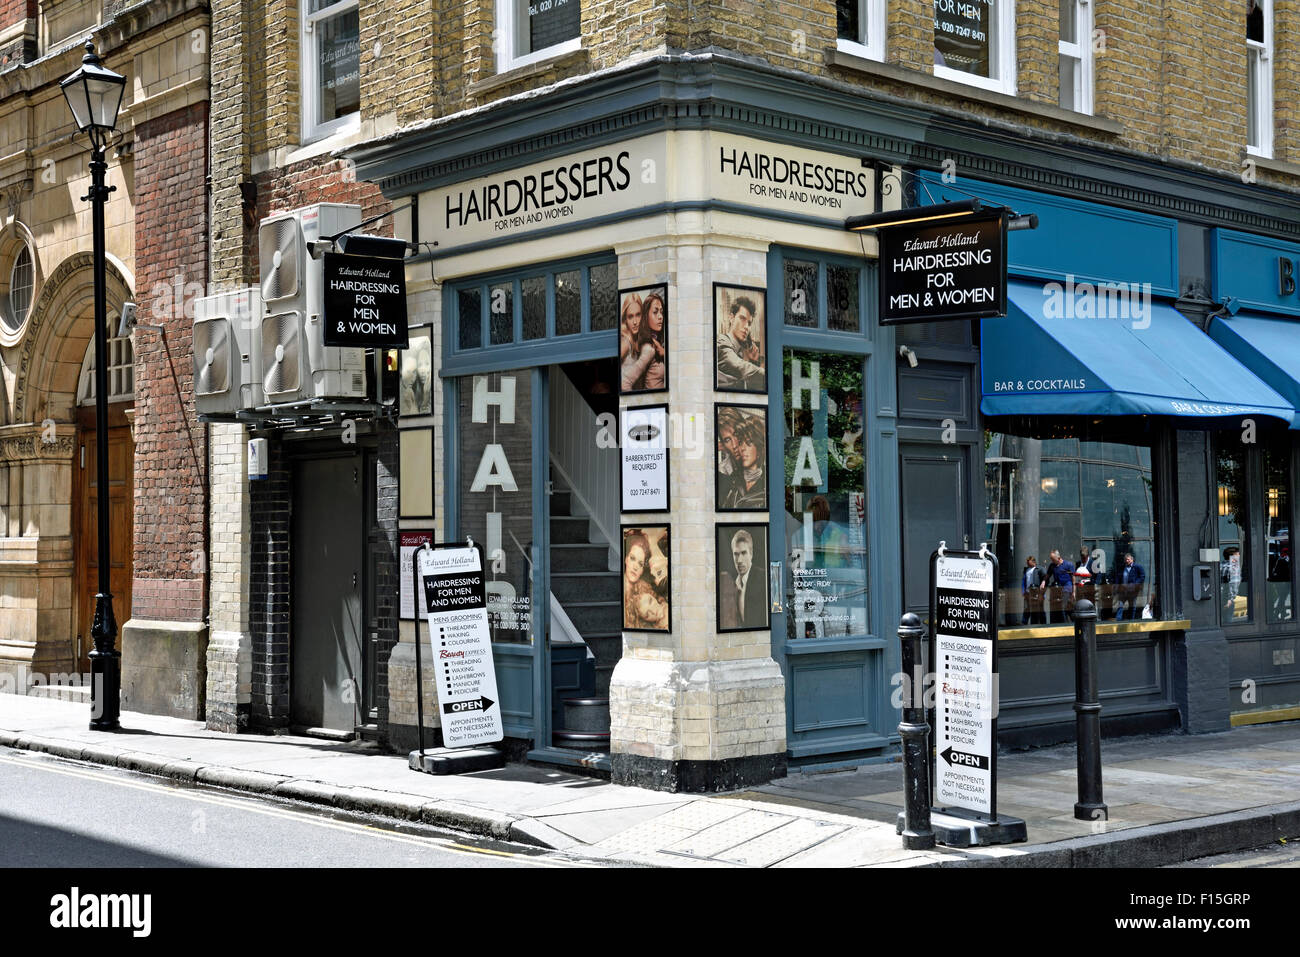 Fashionable Hairdressers London